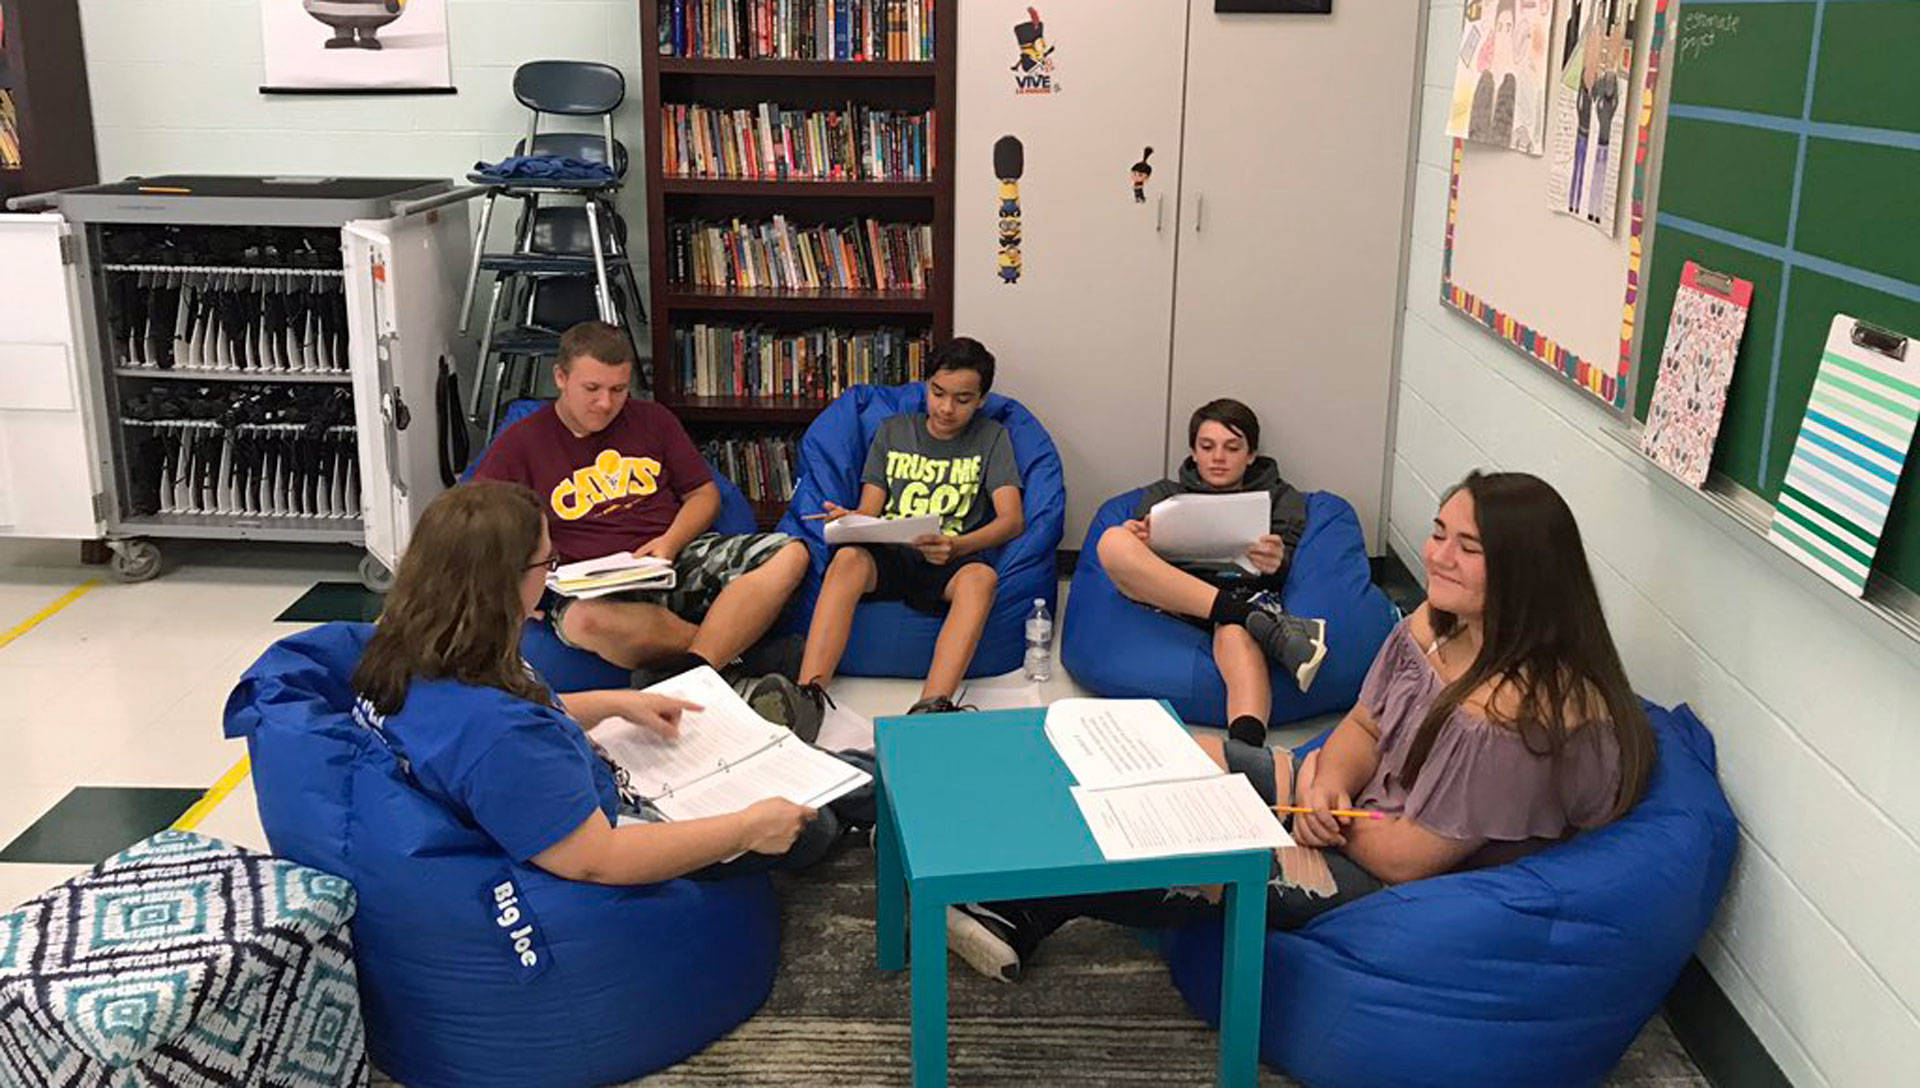 What Teachers Must Consider When Moving To Flexible Seating